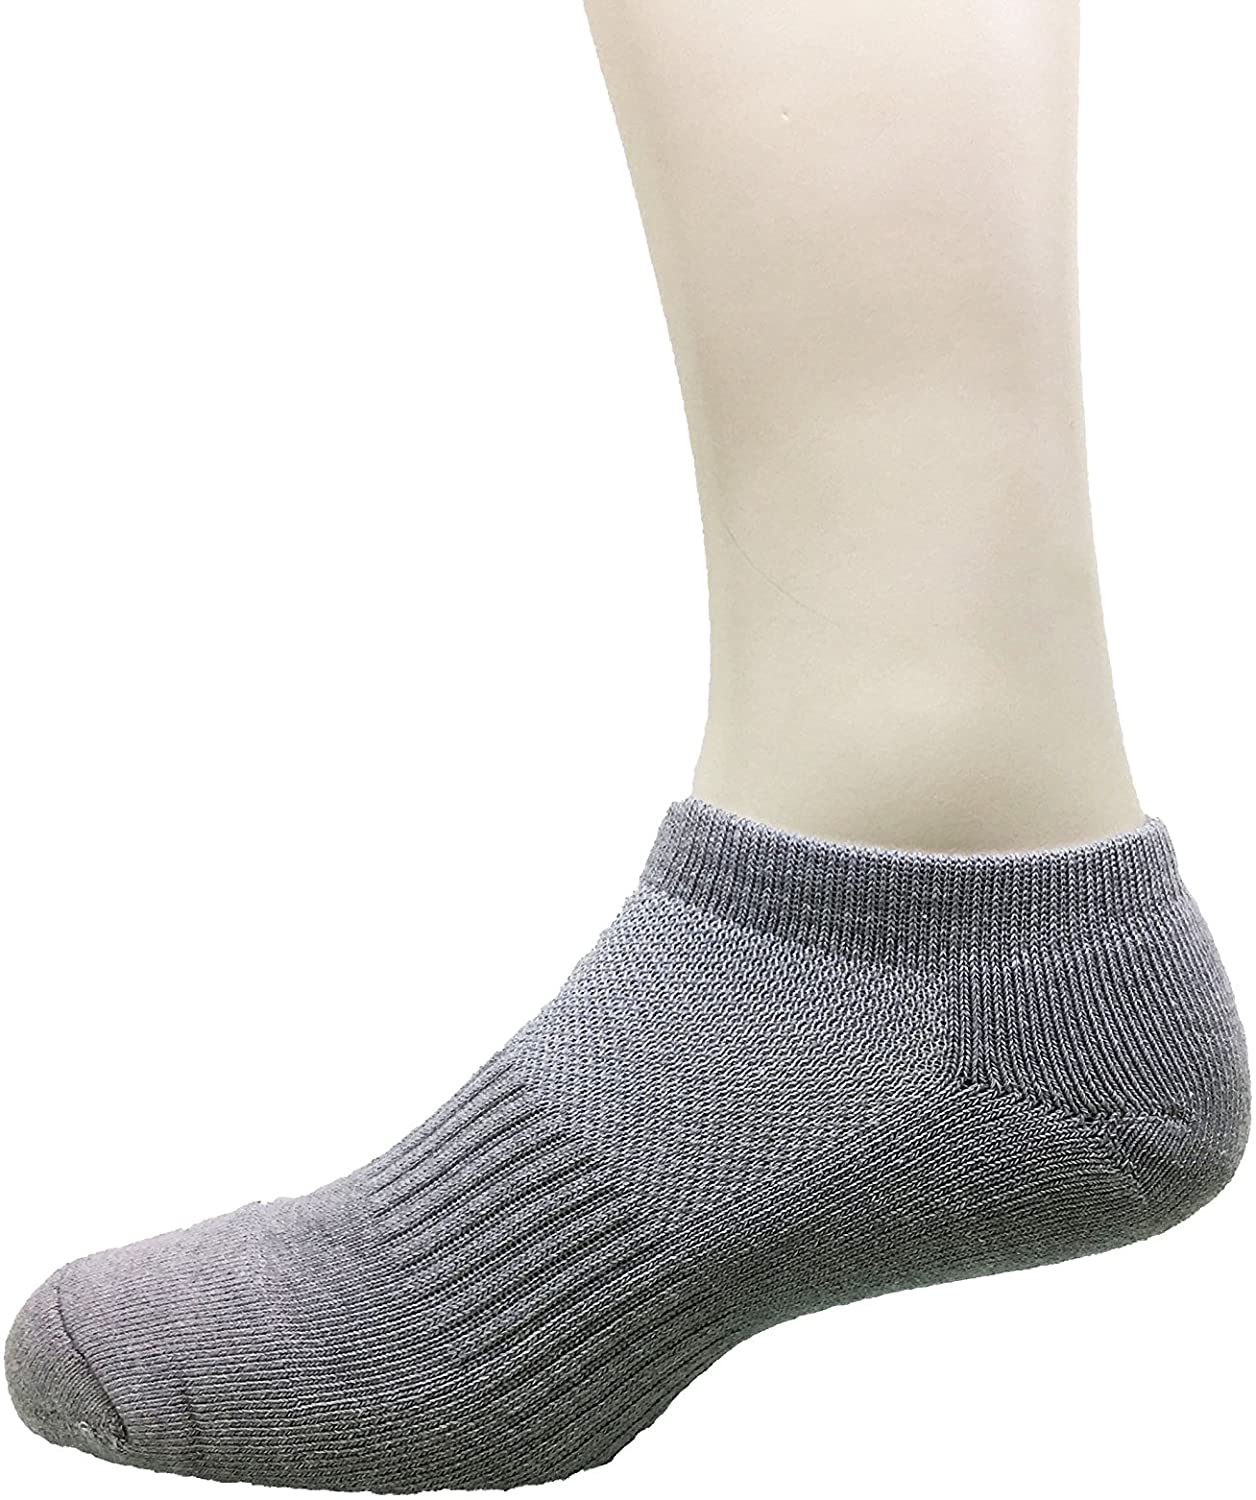 Kuan Yang Low Cut Sock Bamboo Charcoal Exercising No Show Socks for Men and Women